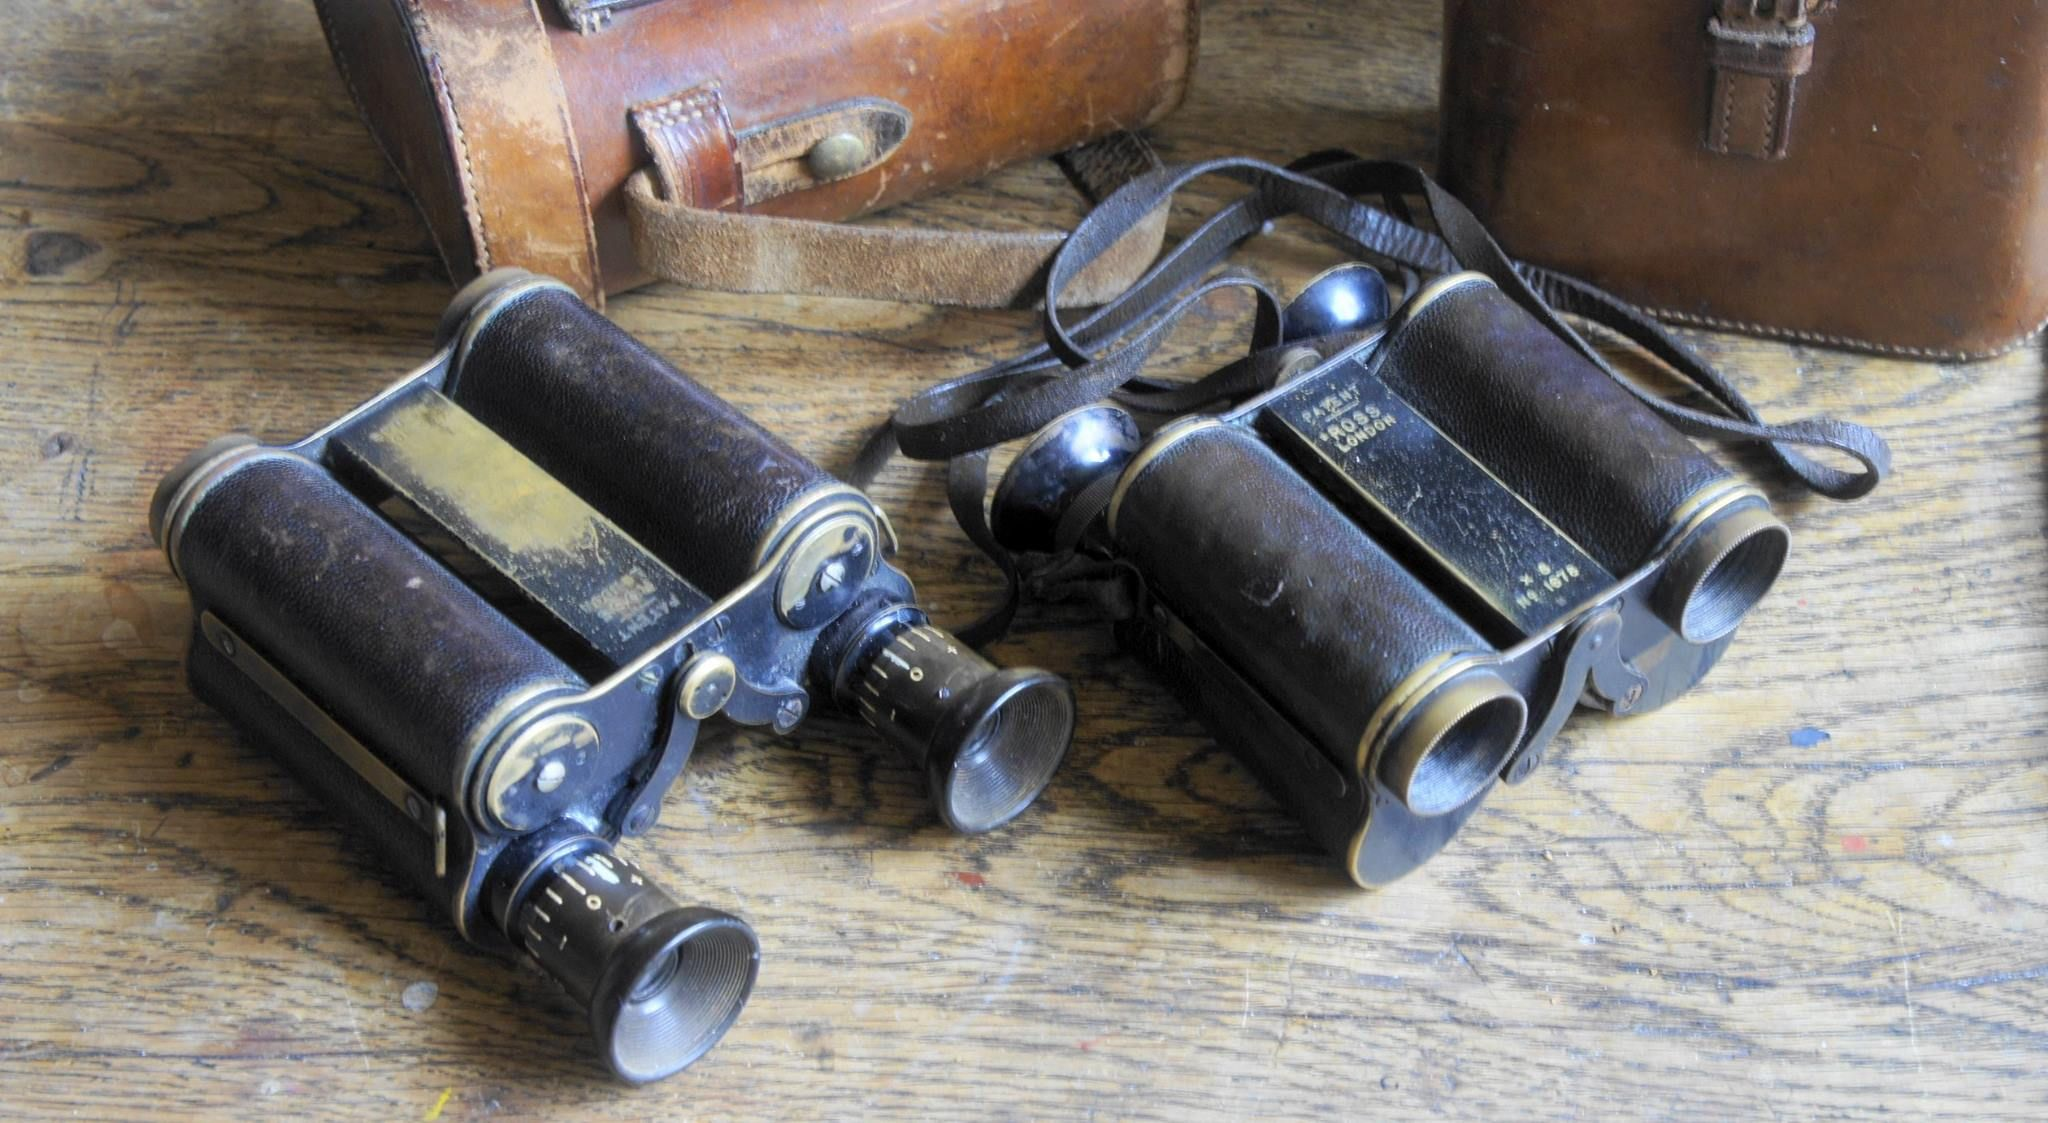 """First english prism binoculars"""" produced"""".  Ross 10X21 in collection. Serial number 1145. Year 1899 - 1900 First serie count 3000 pieces 8X-10X-12X, If and Cf. The unique """"arms"""" are the John Henry BARTON Patent, descibed On 13 December 1898 ;  """"A design for a binocular telescope where the two bodies carrying the lenses and prisms are mounted between two bars. The bodies rotate about the axes of the objectives. The amount of rotation ( to obtain the correct interpupillary distance is limited…"""